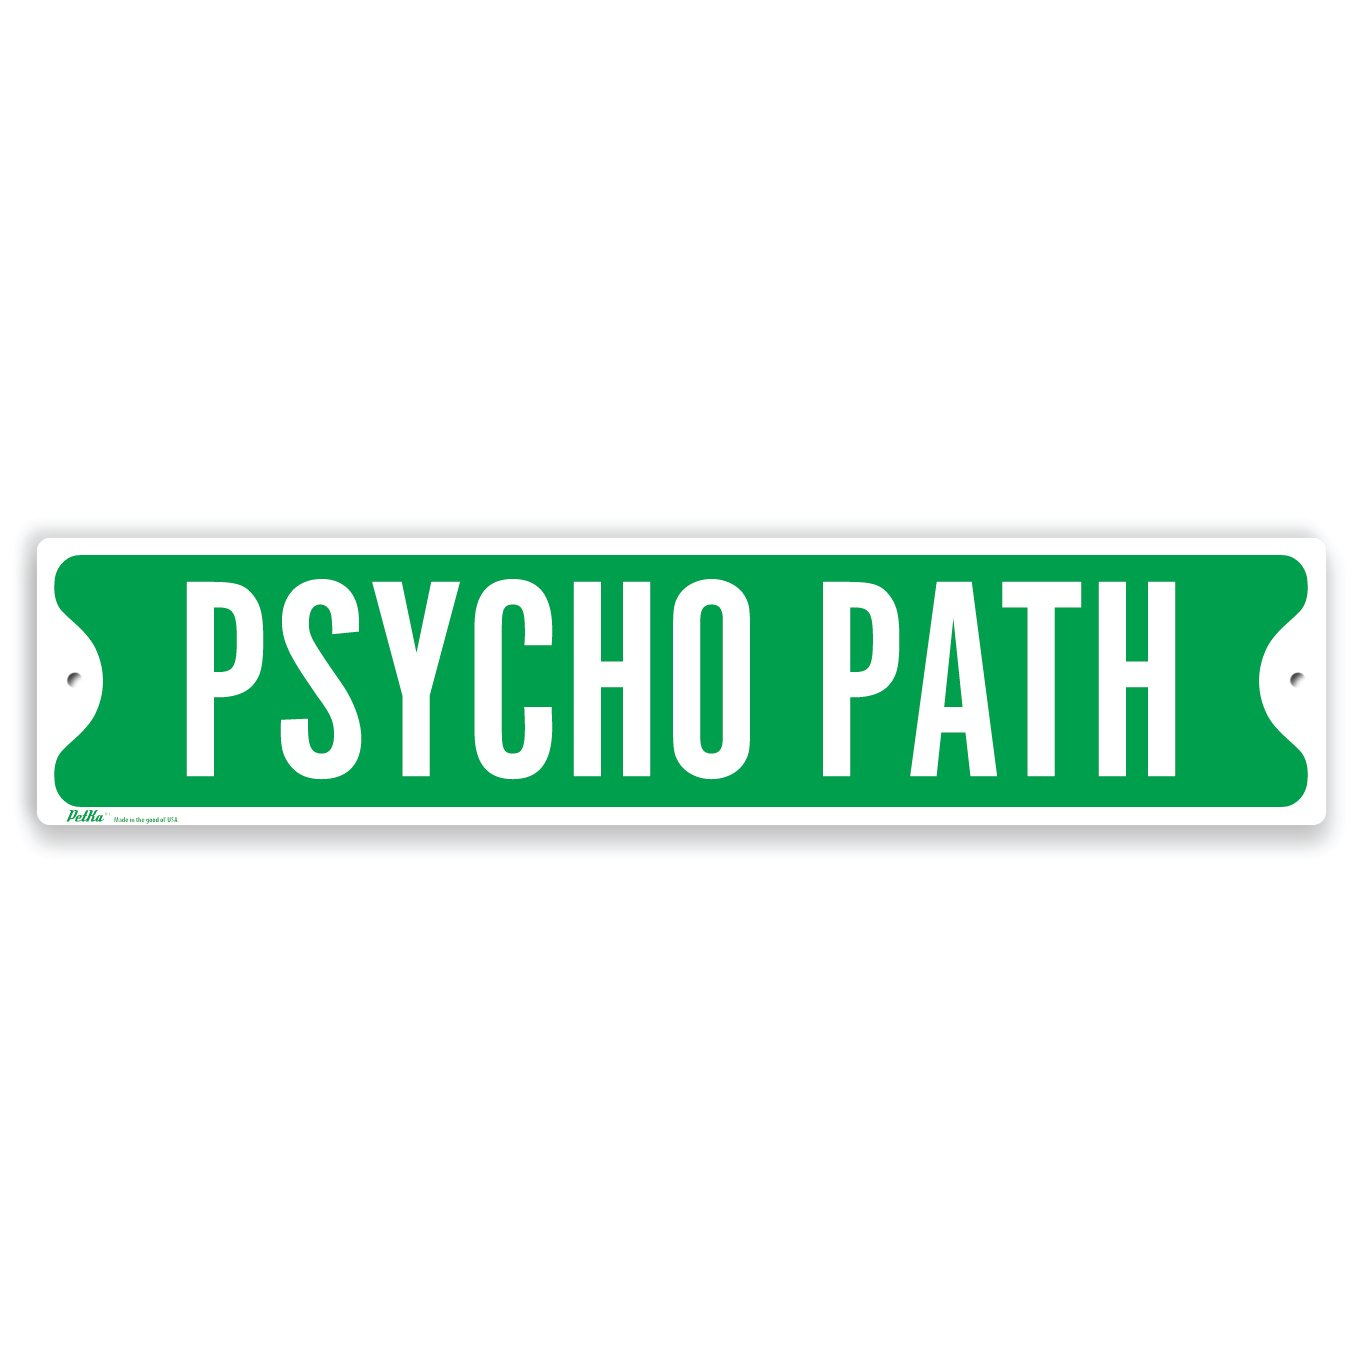 PetKa Signs and Graphics PKSS-0005-NA_18x4''Psycho Path'' Aluminum Sign, 18'' x 4'', White on Green